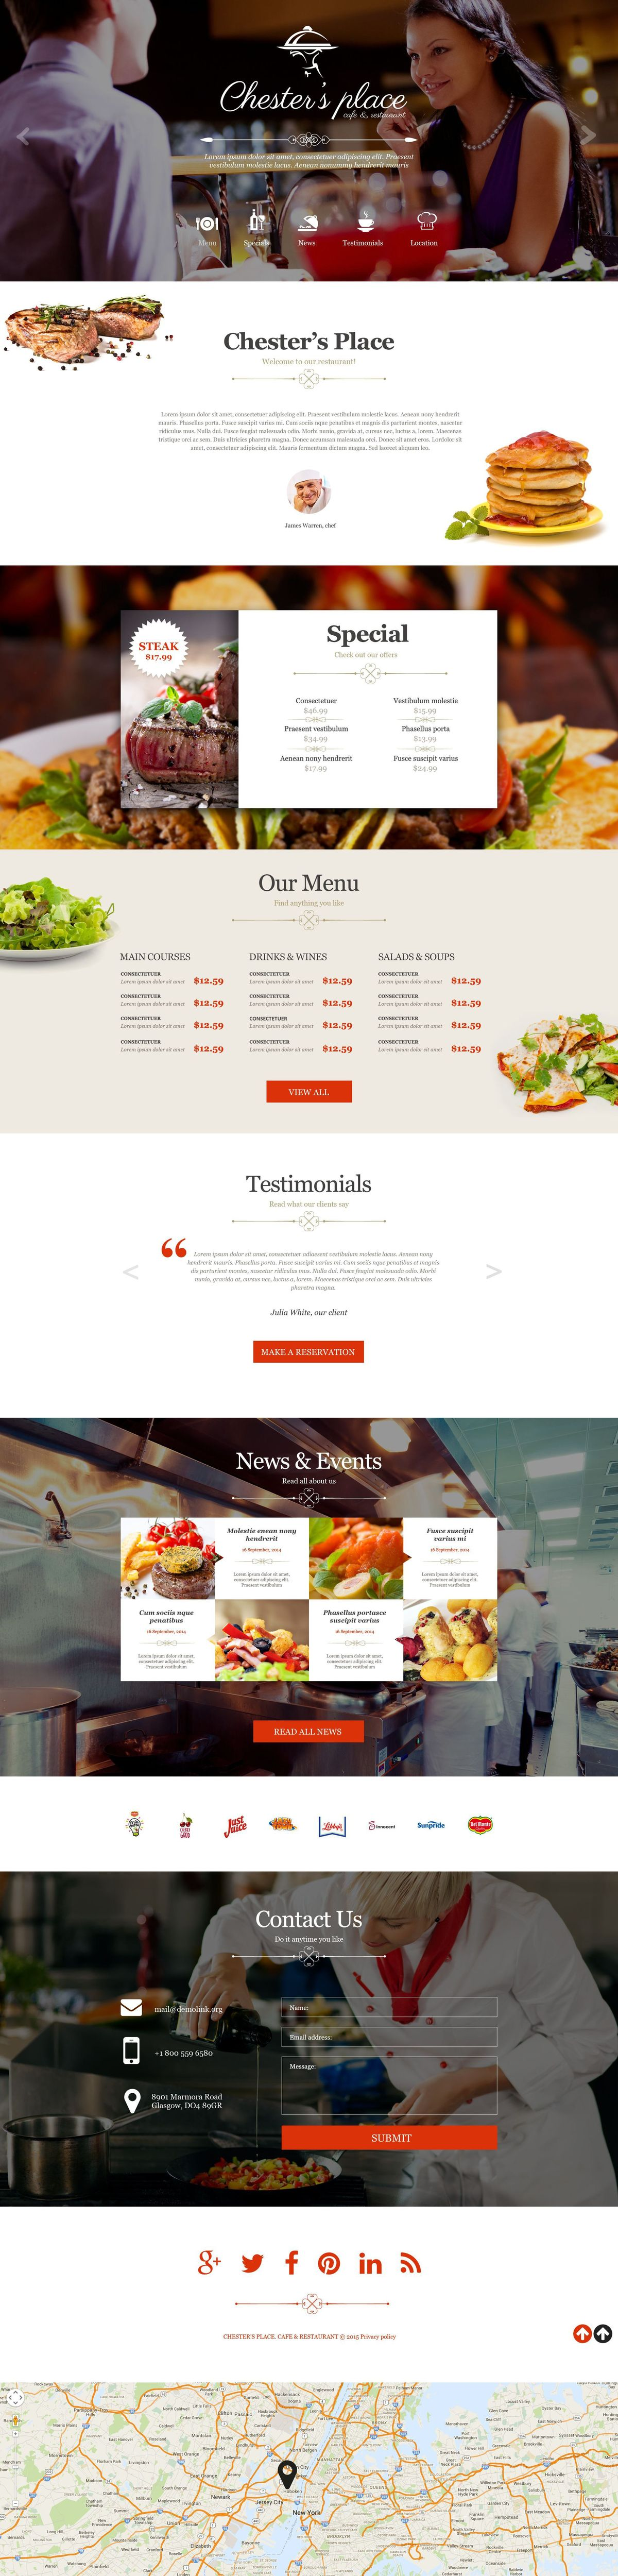 Muse Templates | Adobe Muse Templates | Muse Themes | Template Monster